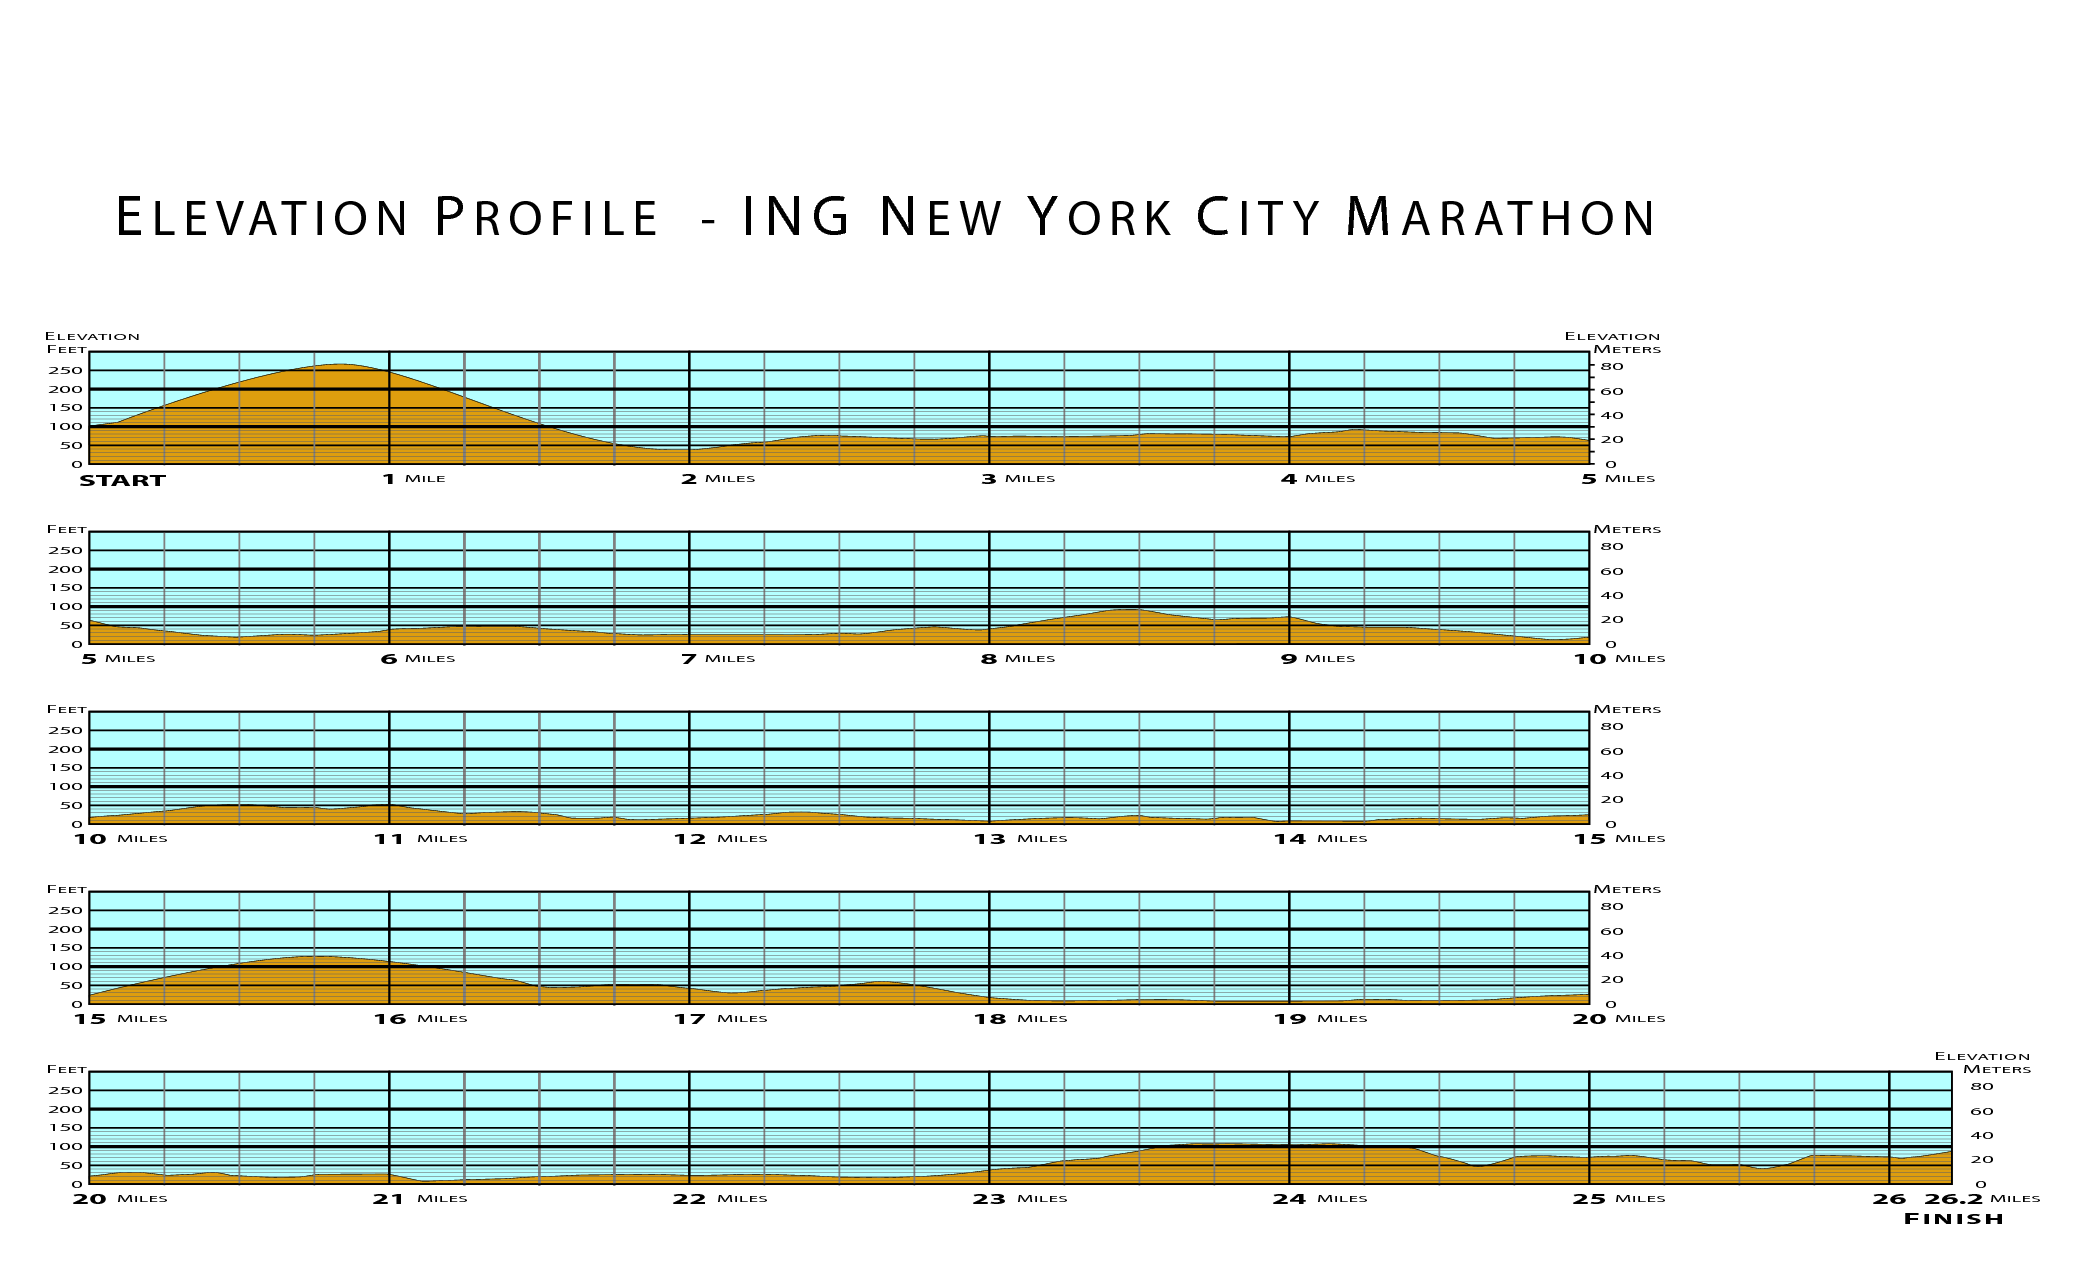 2013 New York City Marathon Elevation Profile | Marathon